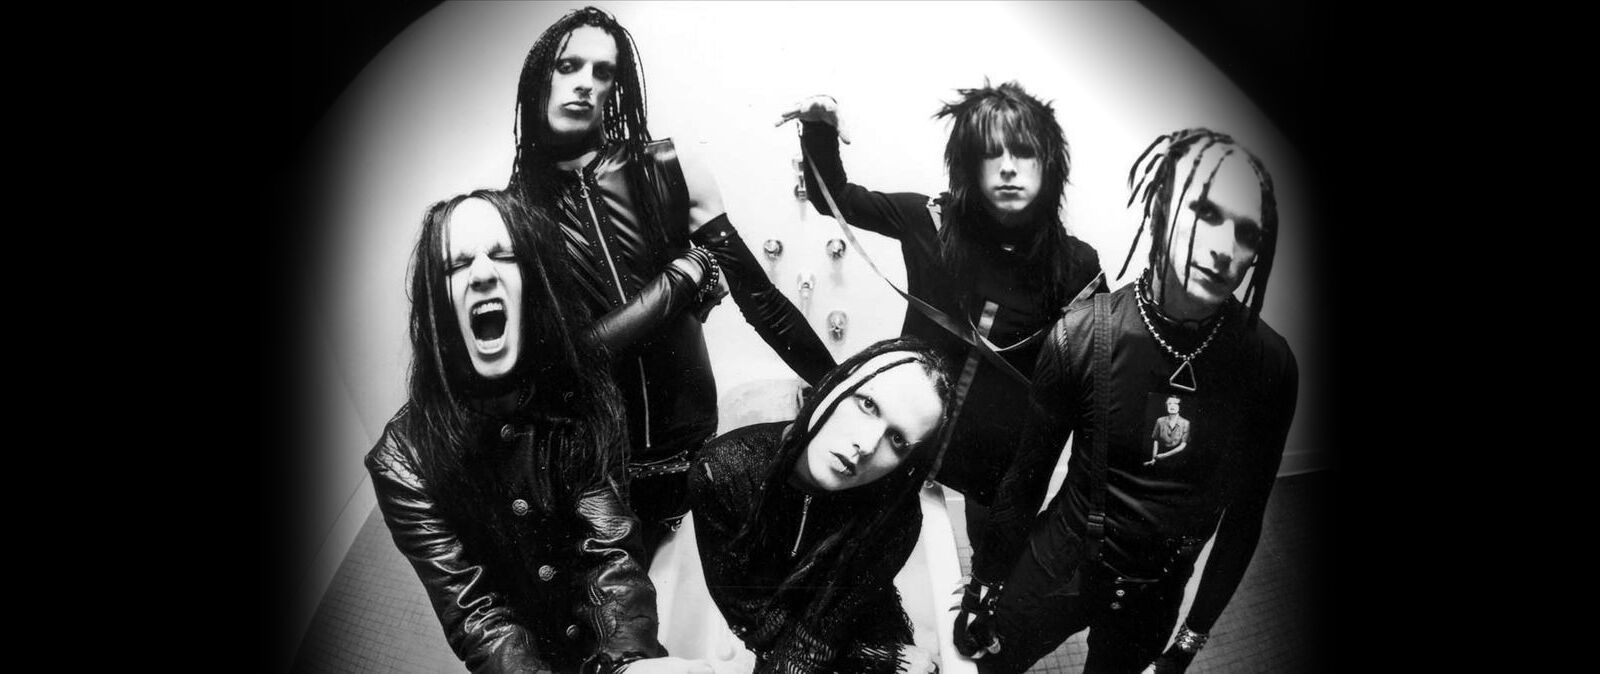 Wednesday 13 and Eyes Set to Kill